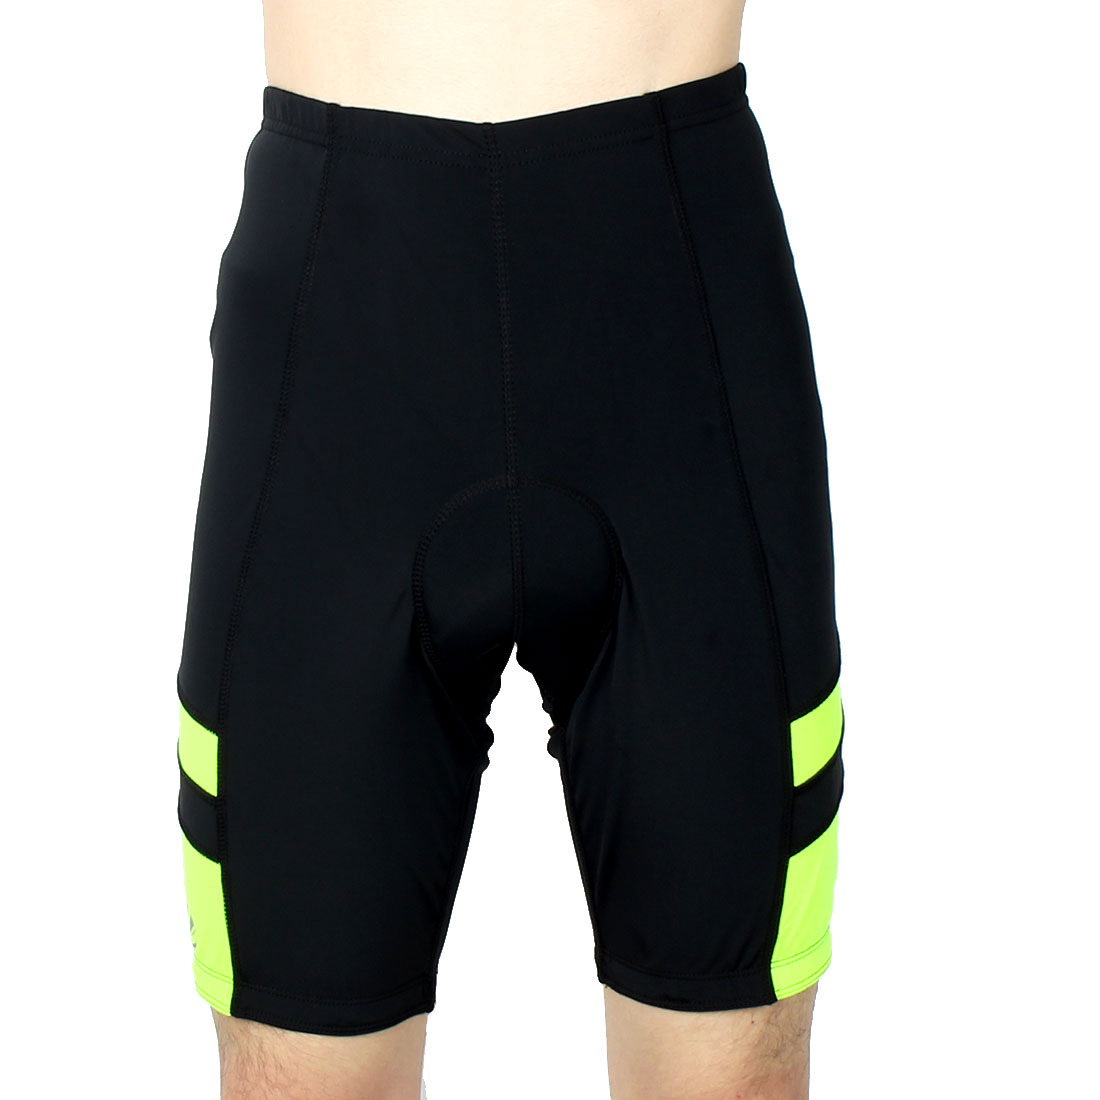 Men Polyester Outdoor Riding Bicycle Biking Breathable Underpants Half Pants Cycling Shorts Fluorescence Yellow S